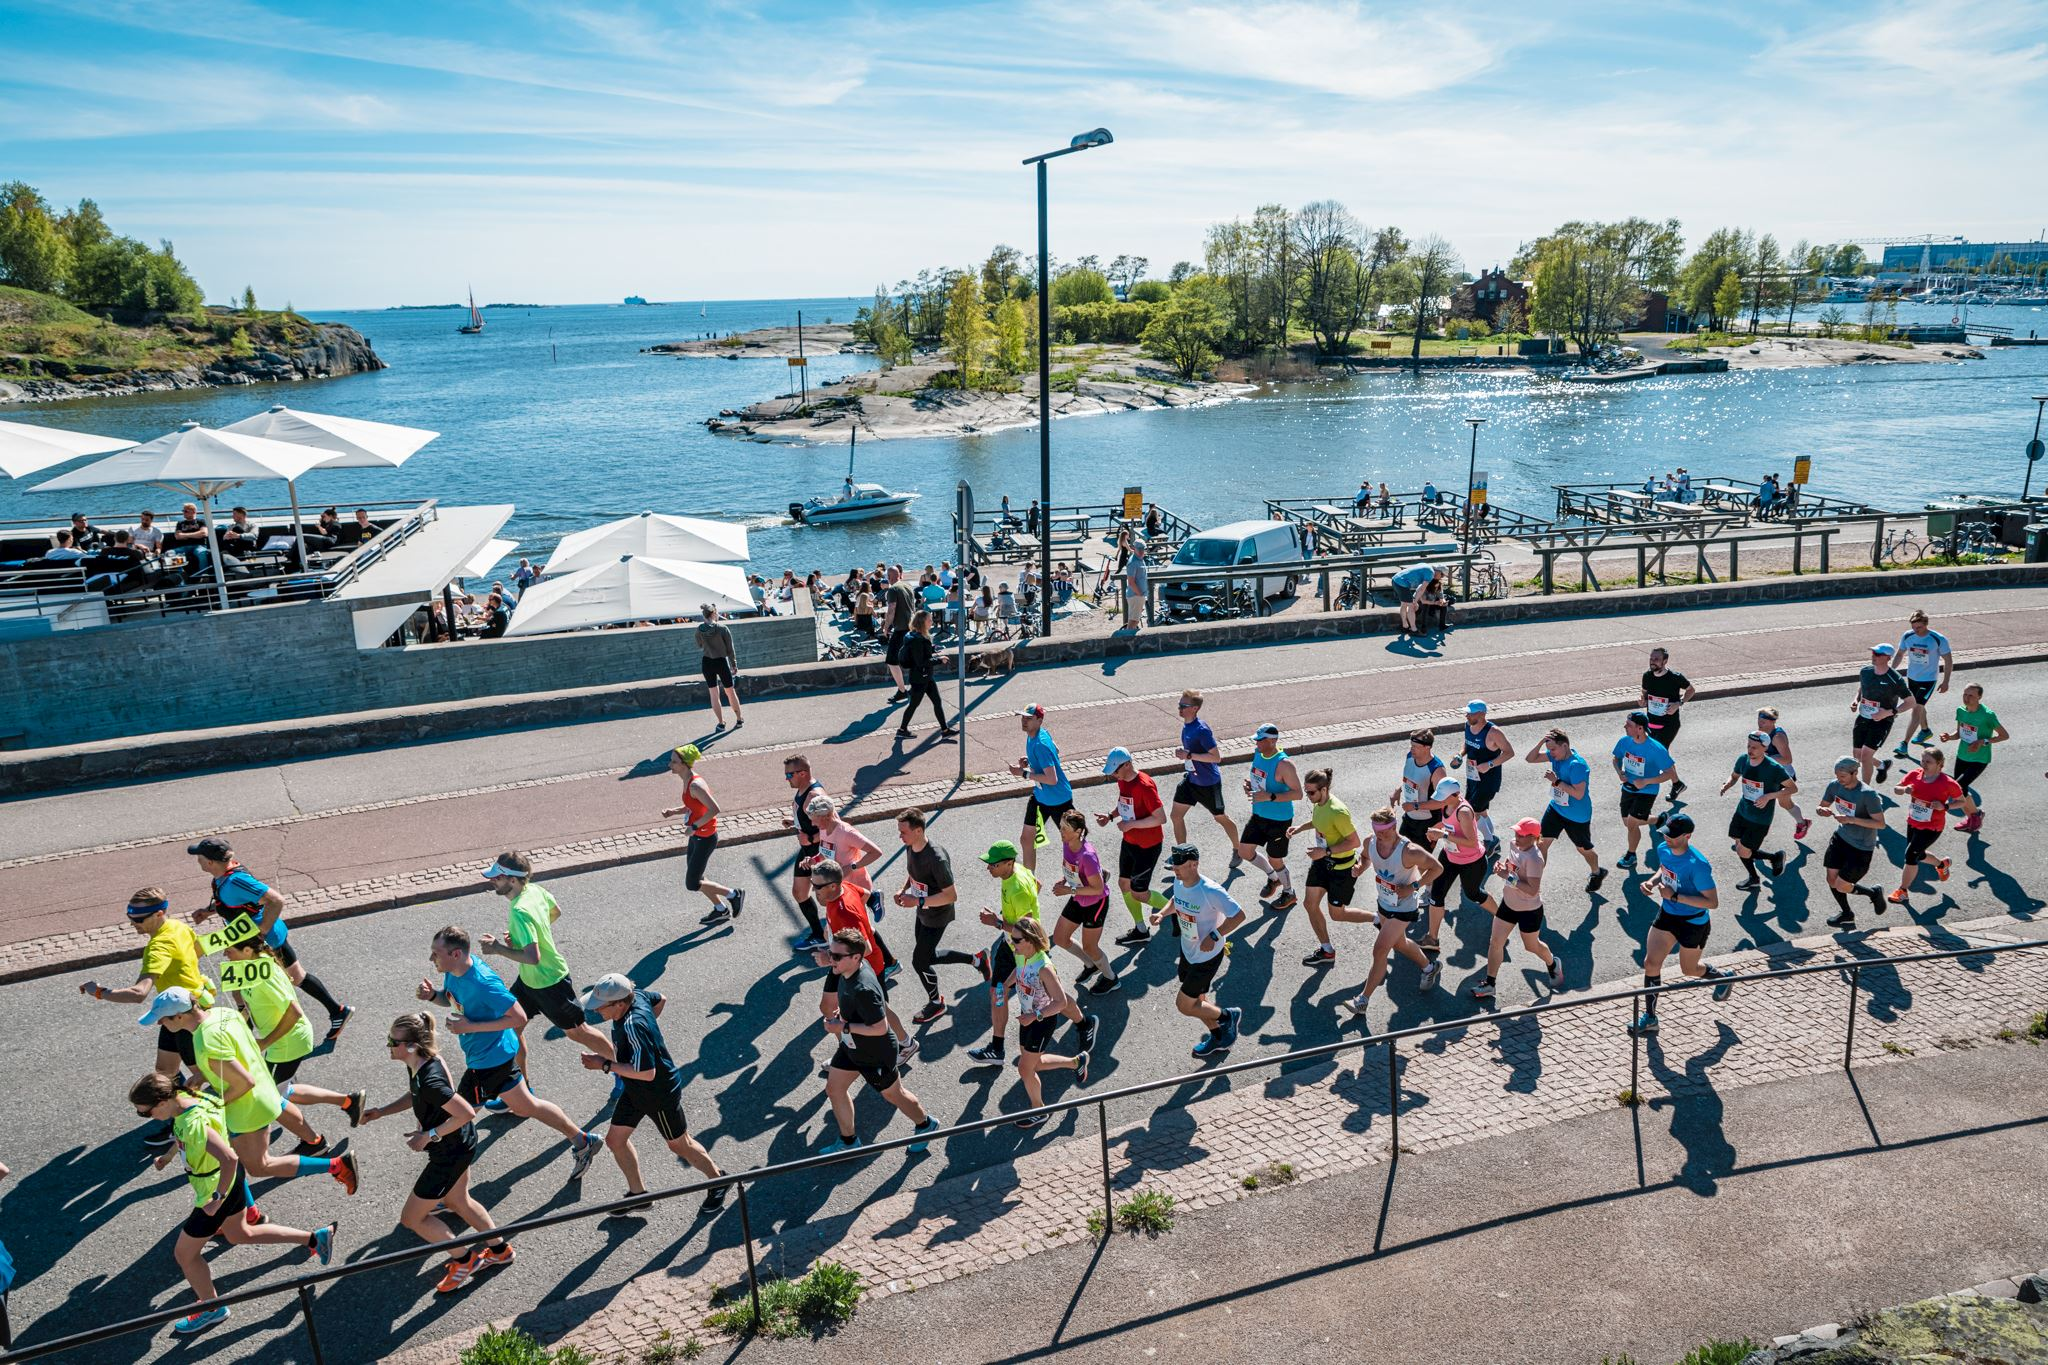 Reasons to run the number one running event in Finland - The Helsinki City Marathon